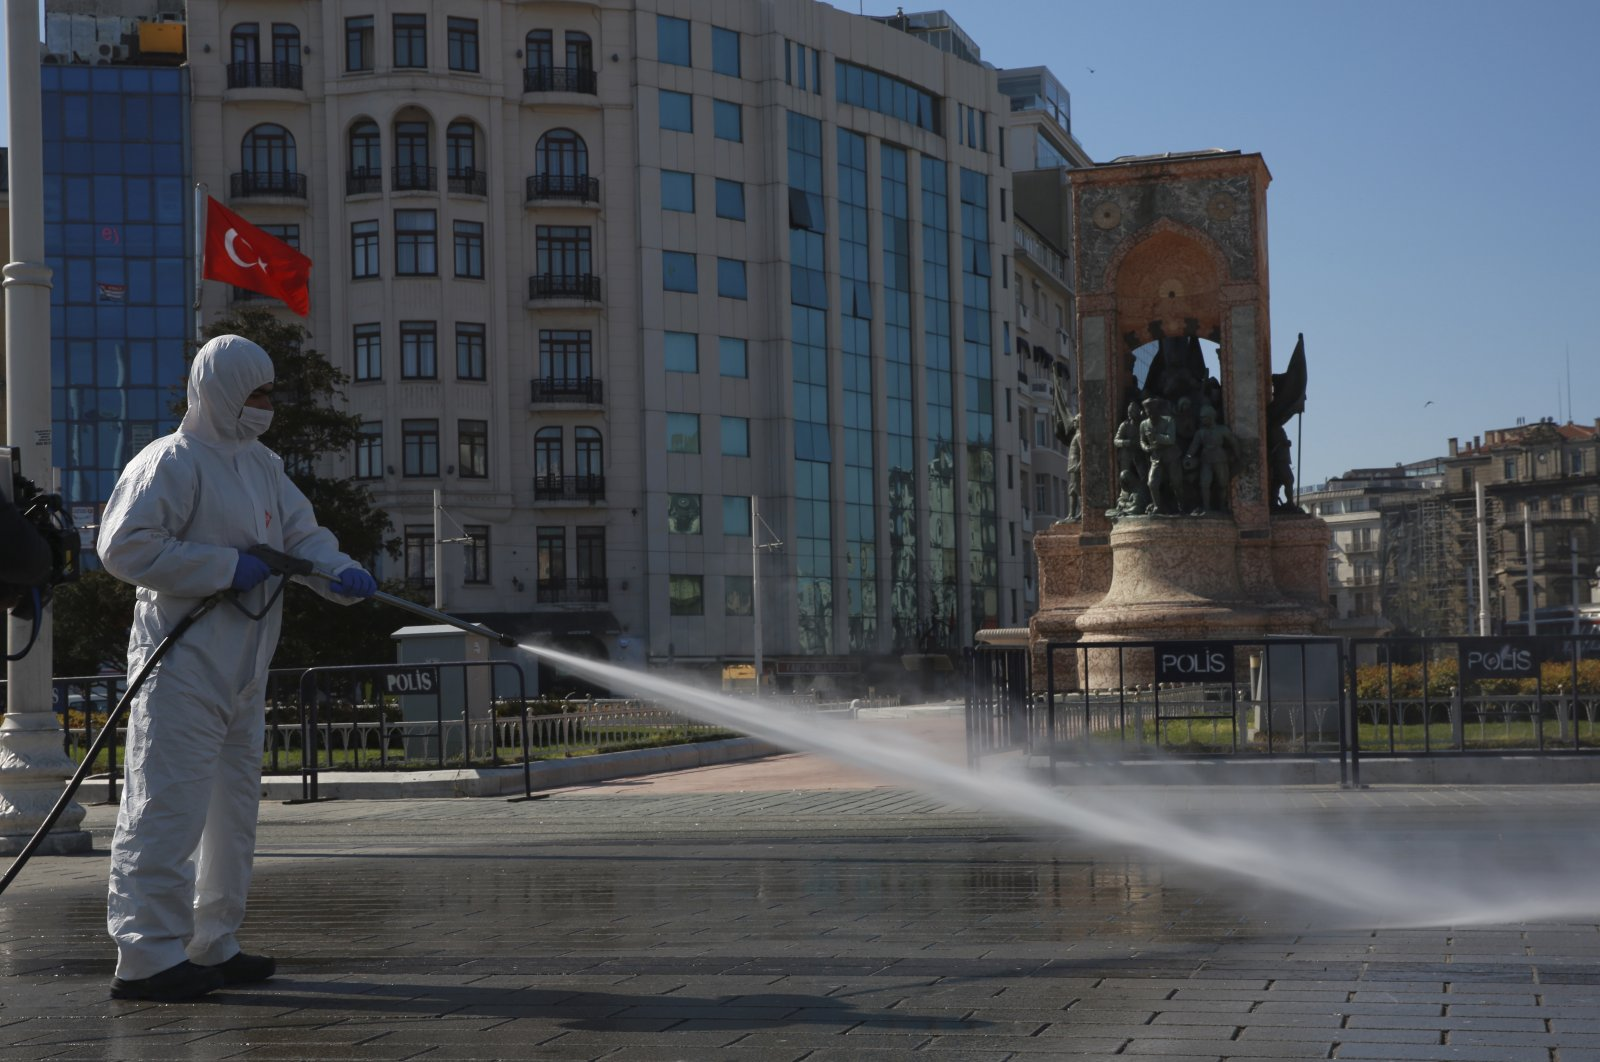 Workers clean and disinfect surfaces in the city's iconic Taksim Square amid the coronavirus outbreak, Istanbul, Turkey, April 12, 2020. (AP Photo)